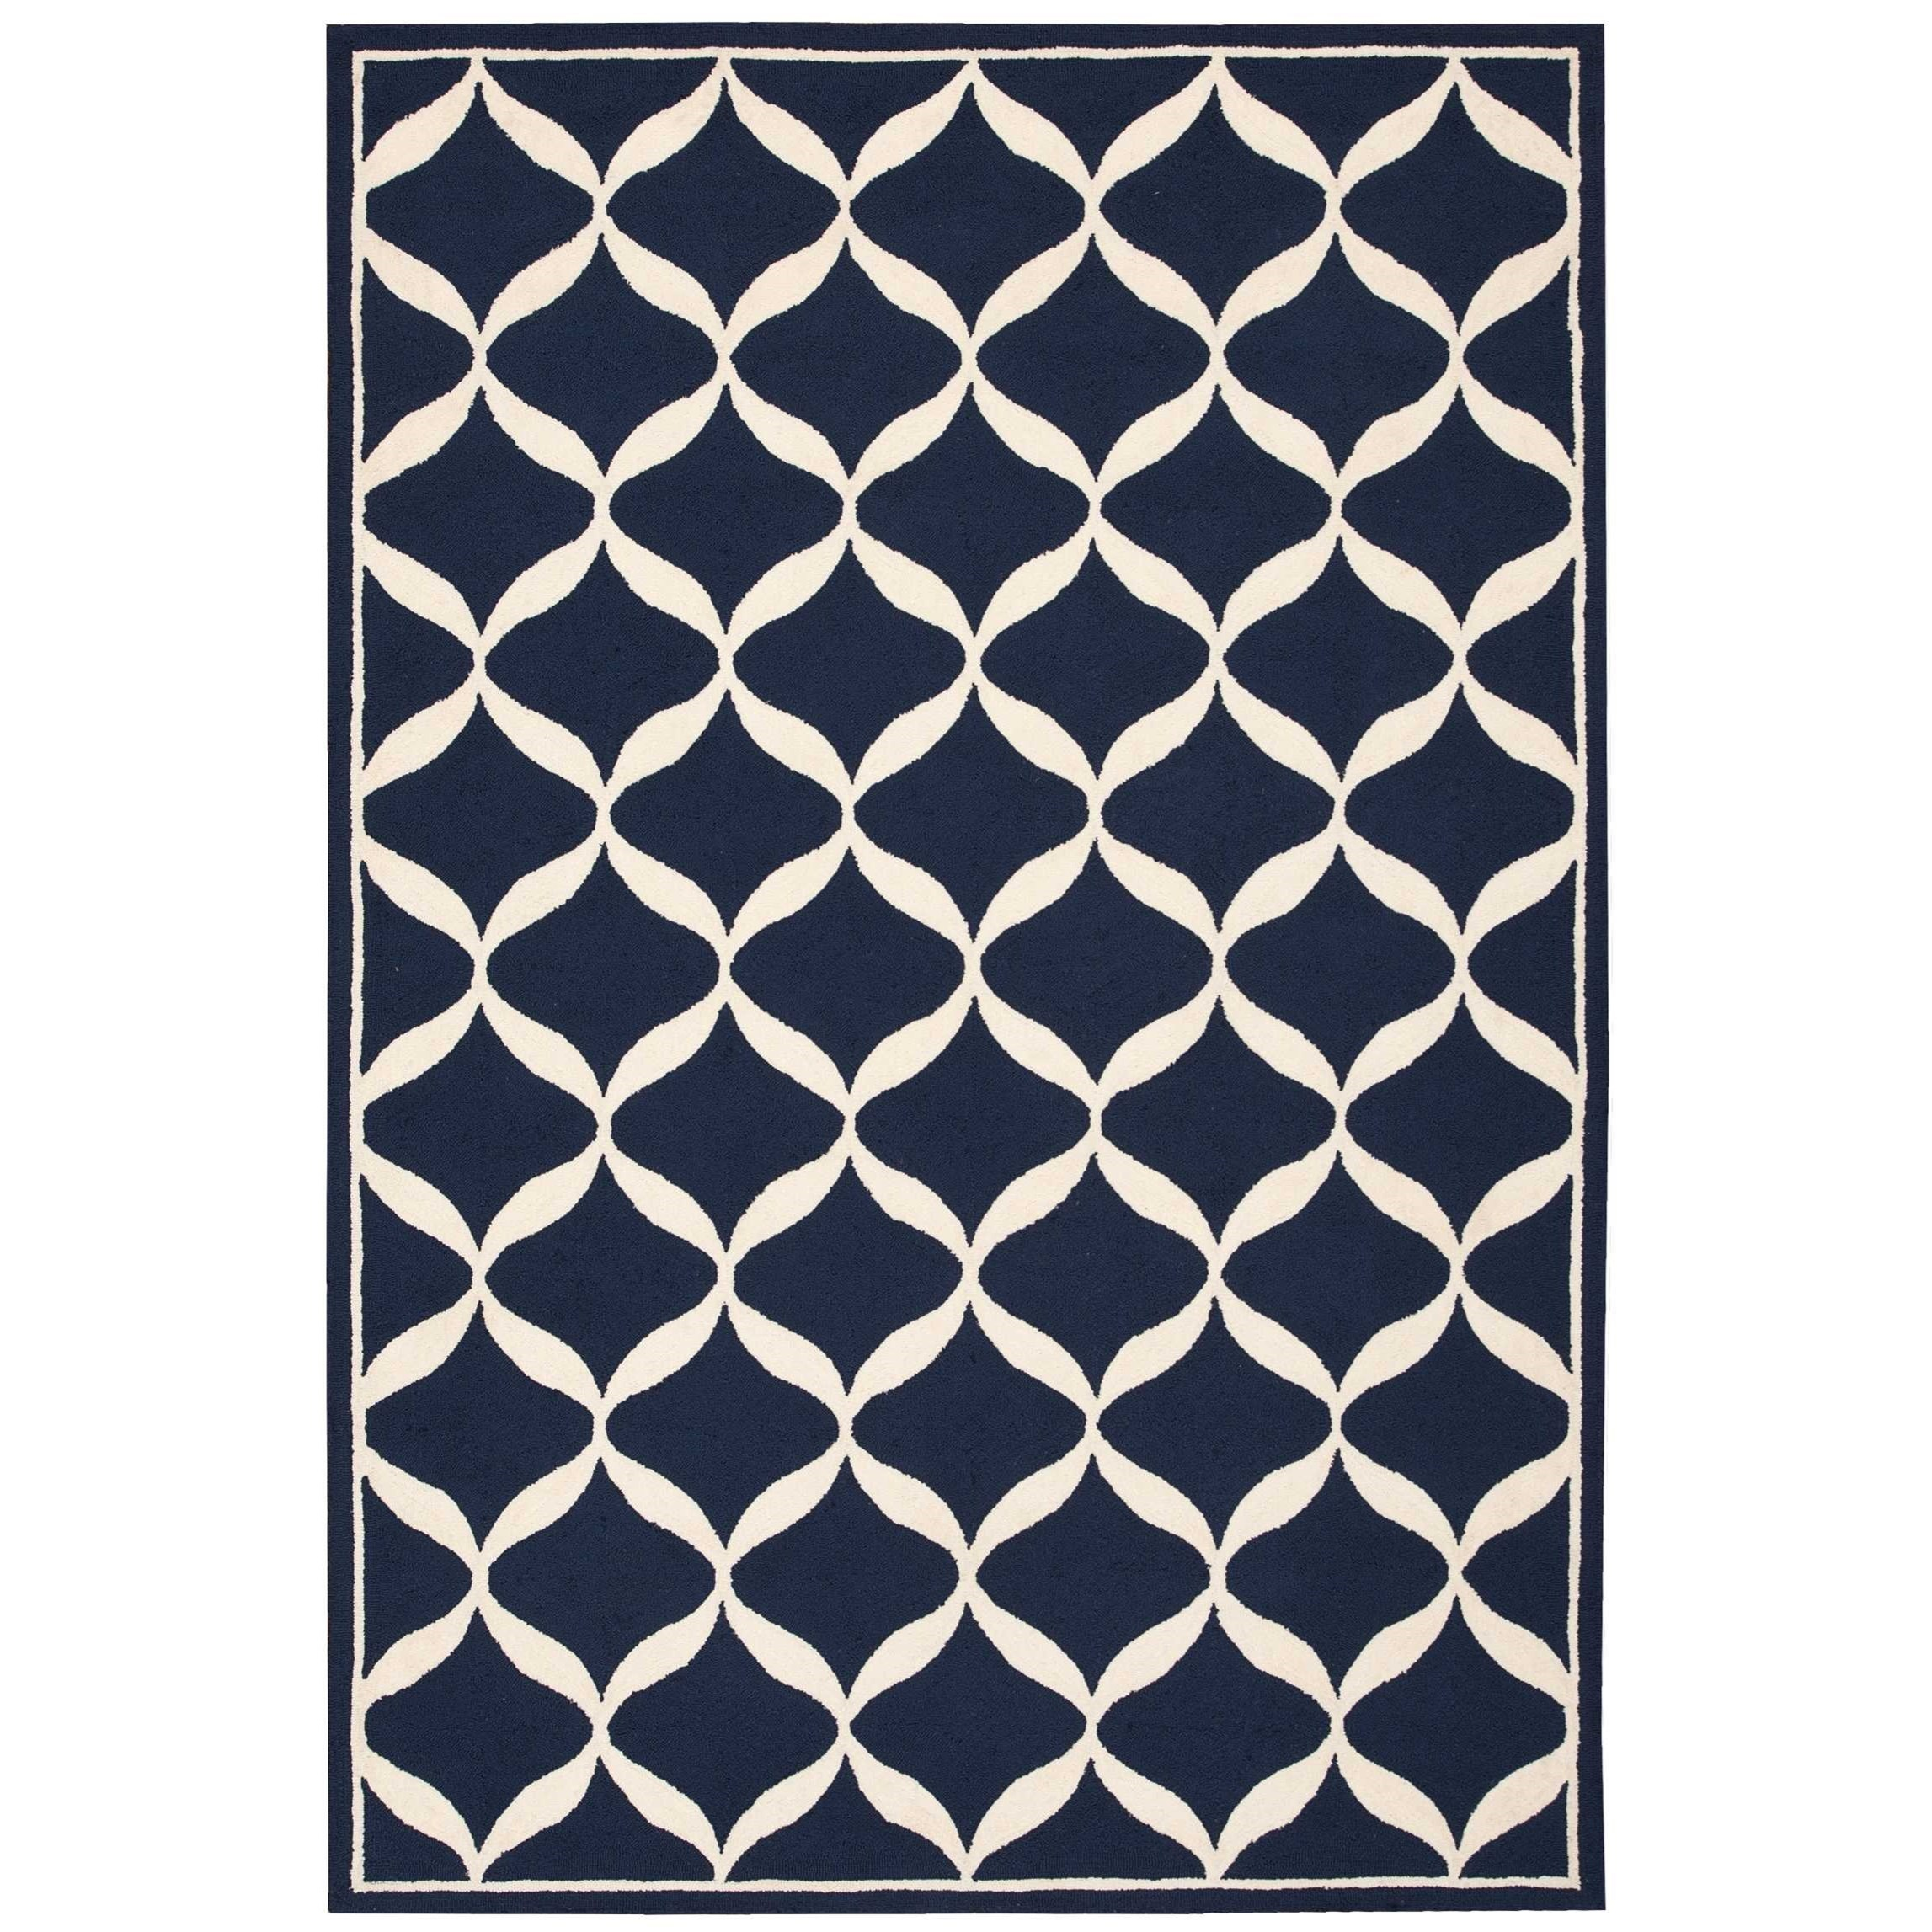 """Decor1 2'6"""" X 3'10"""" Navy/White Rug by Nourison at Home Collections Furniture"""